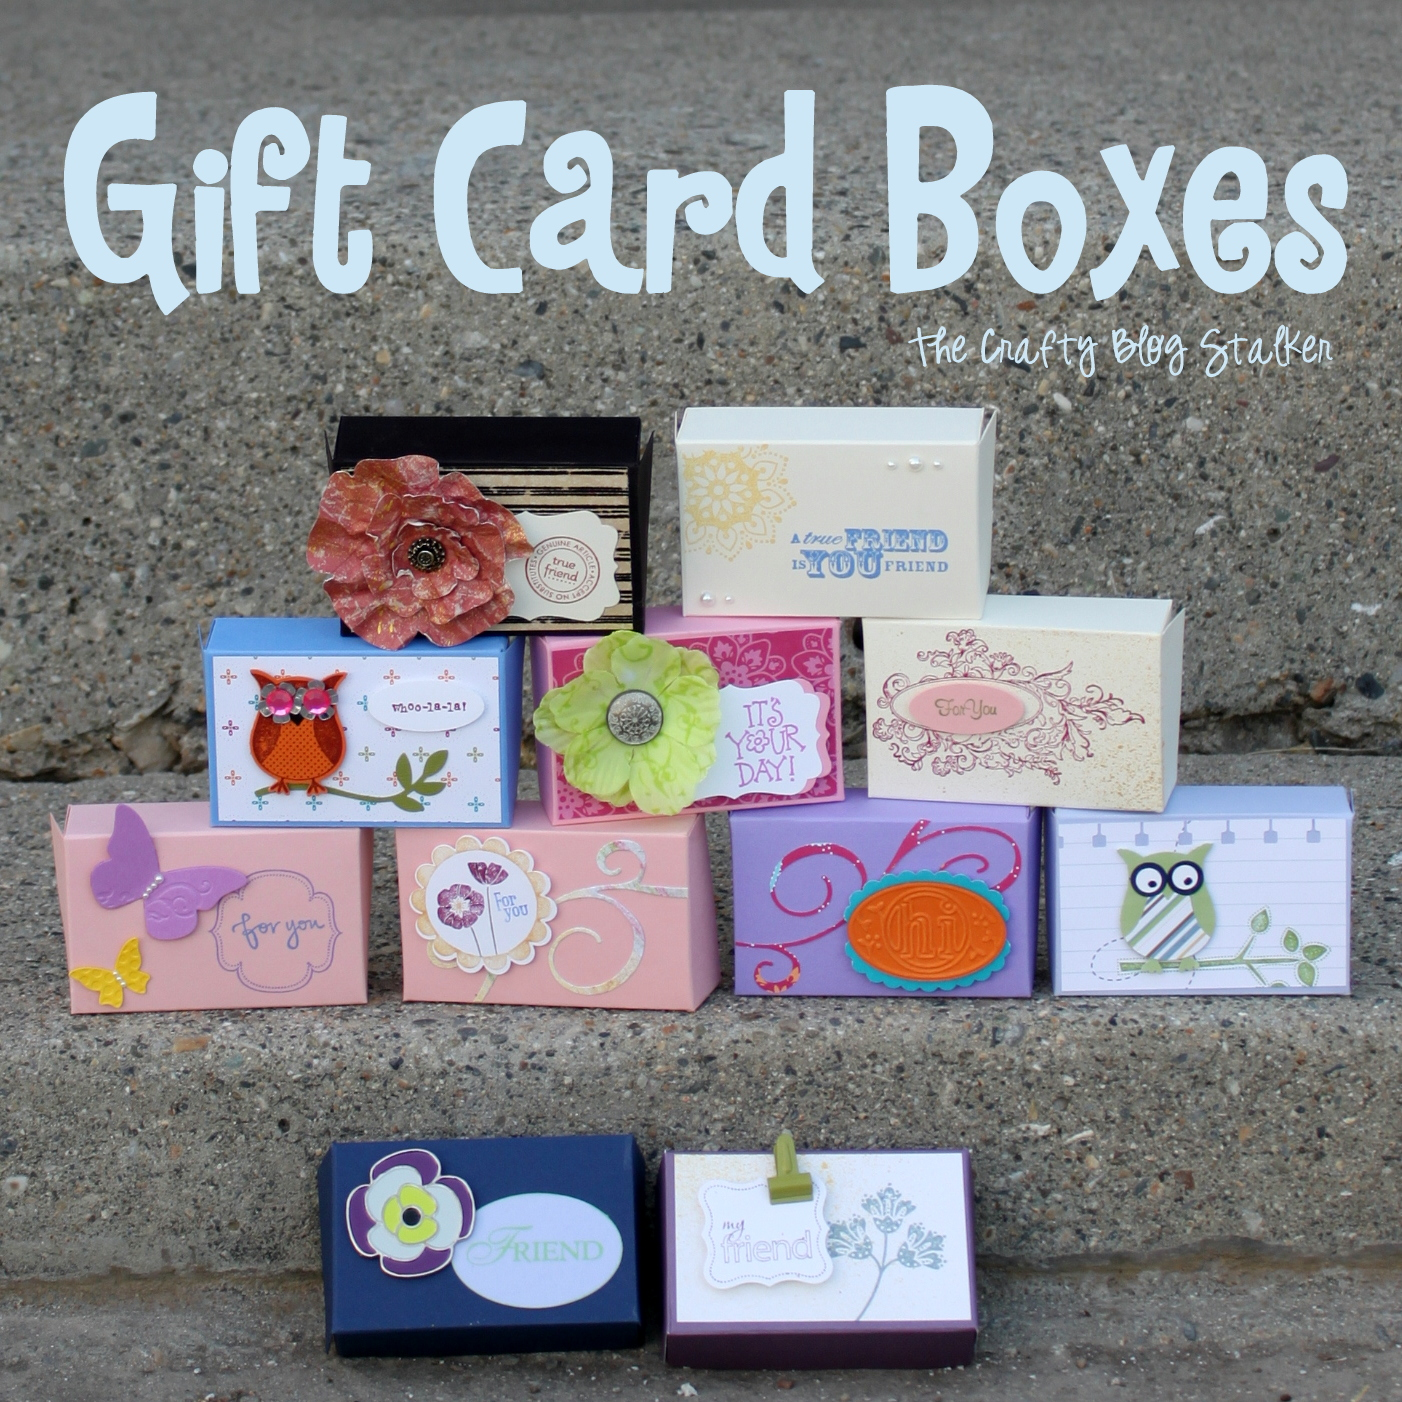 Learn how to make a gift card box. A simple DIY craft tutorial idea that fits a gift card perfectly and will make gift giving easy and personalized.